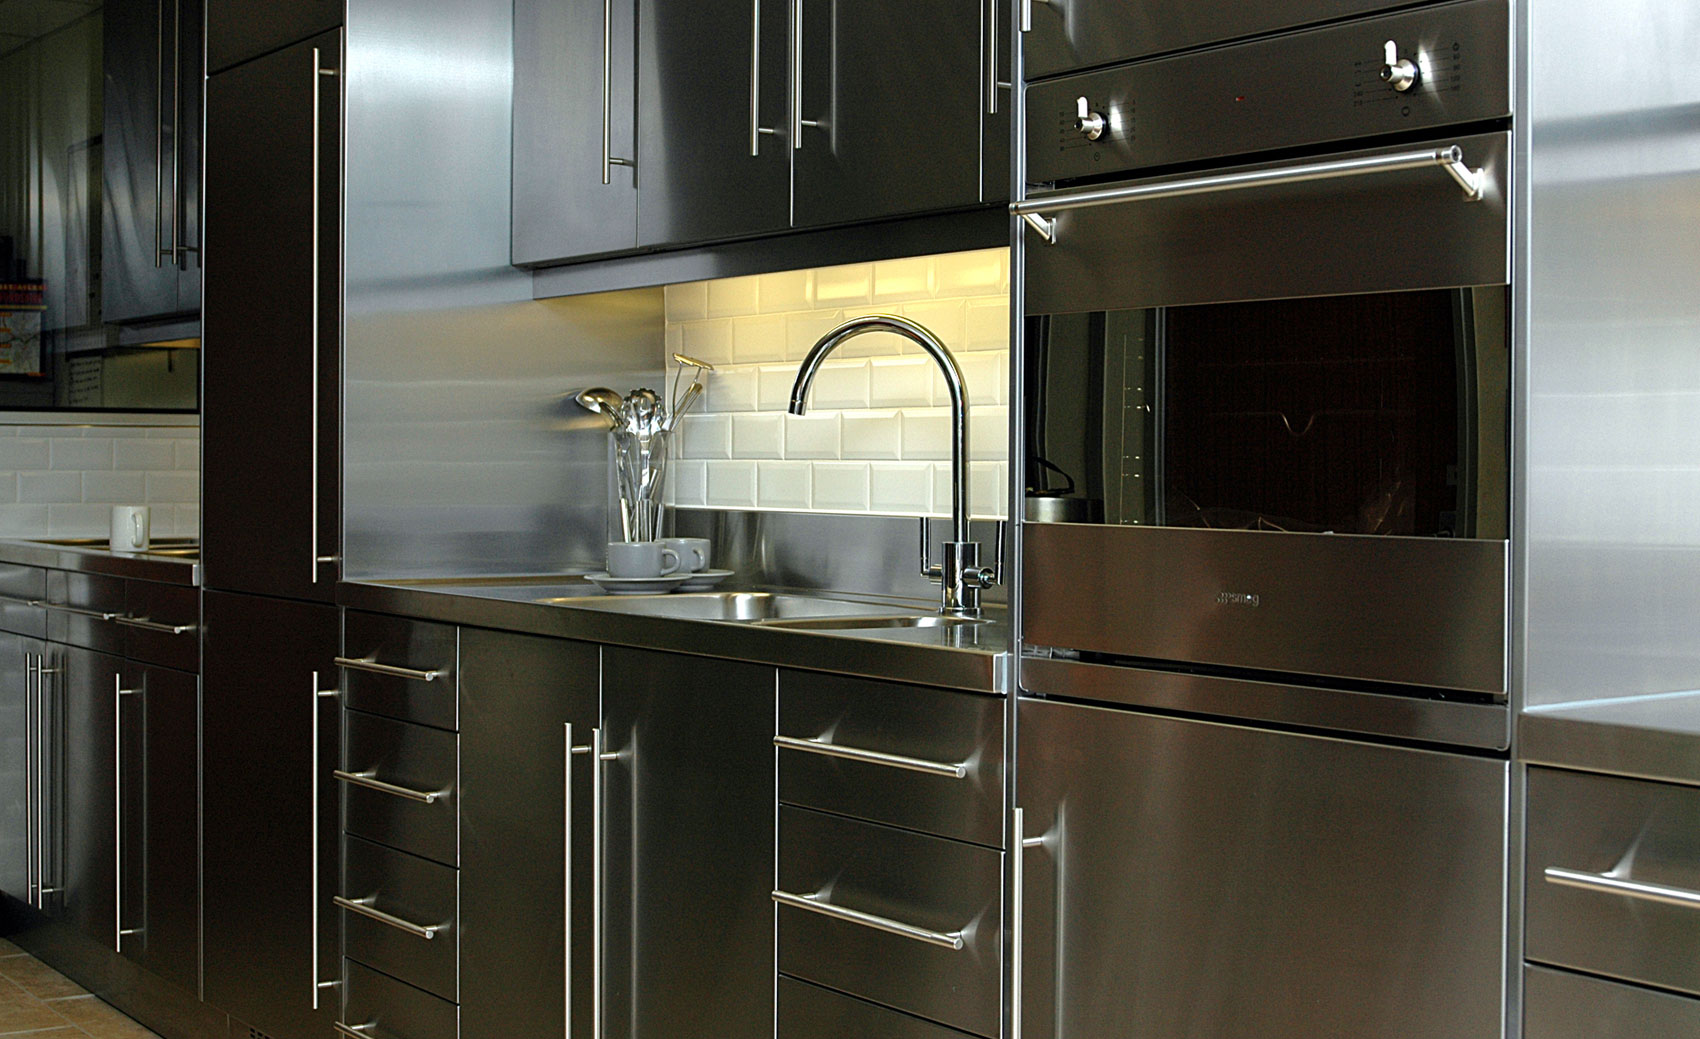 Stainless Steel Kitchen Cabinet Worktops Splash Backs Uk Cavendish Equipment